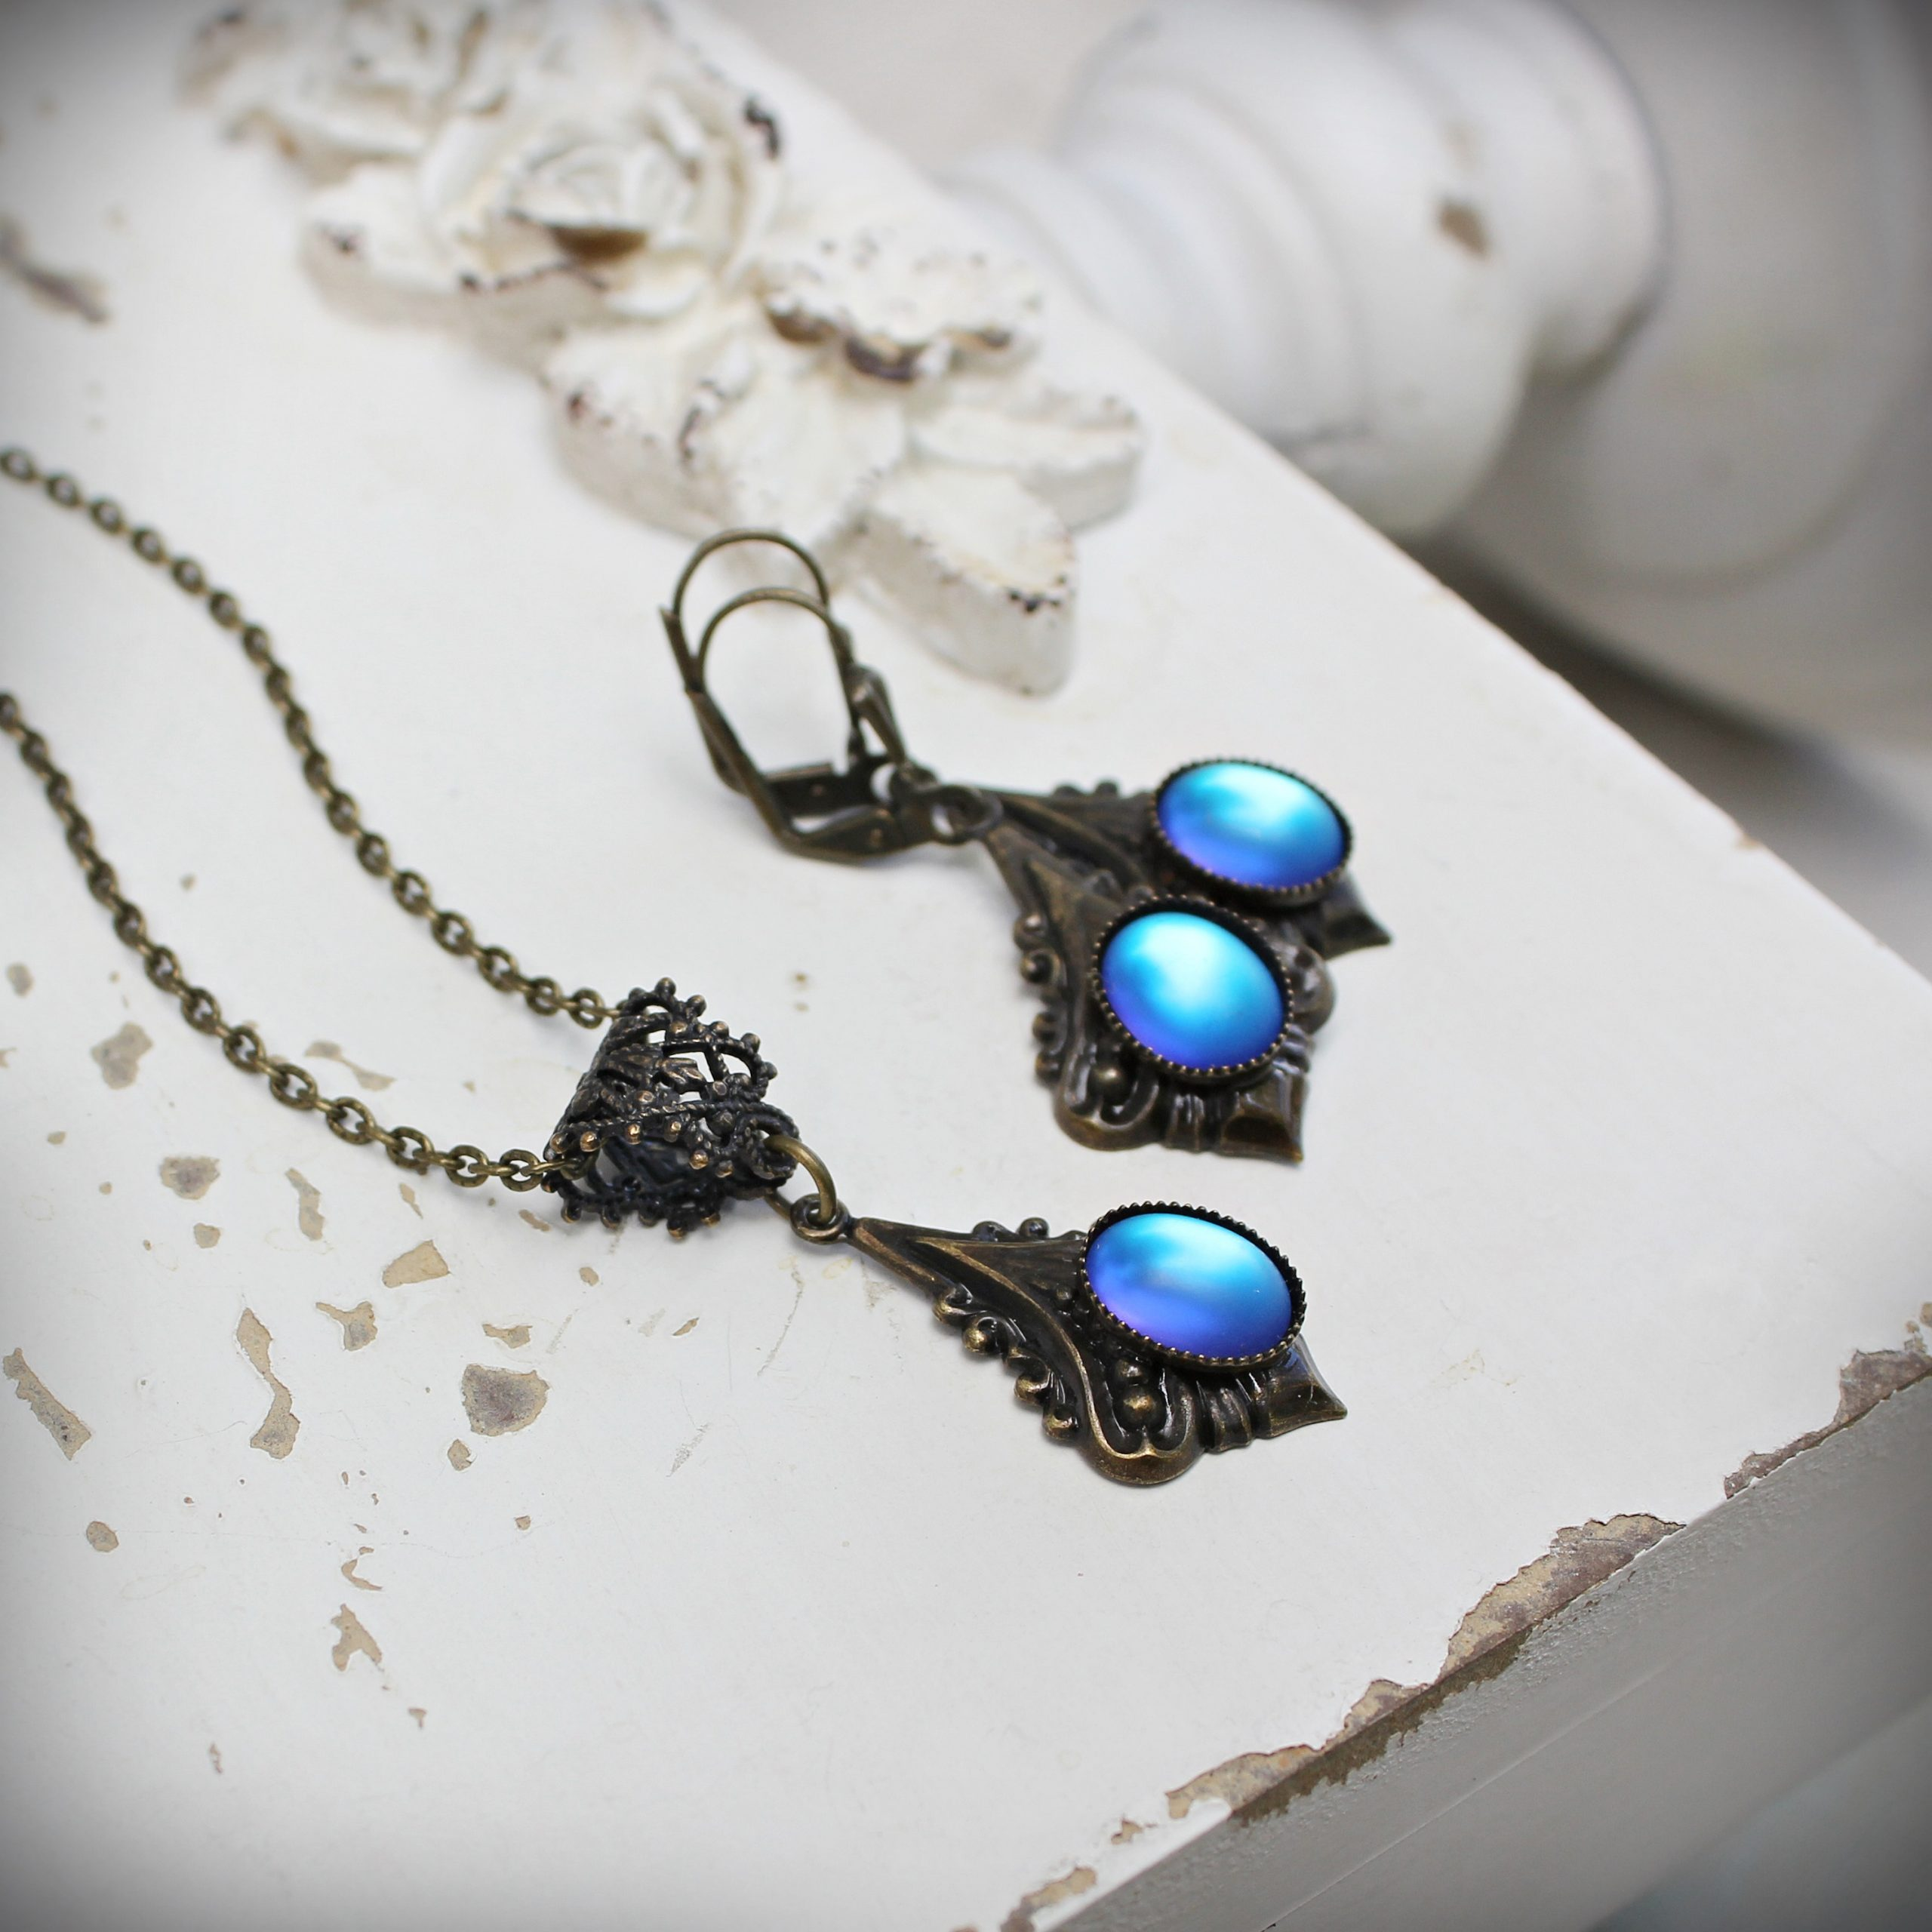 Frosty Blue Luminous Glass Necklace and Earrings Set